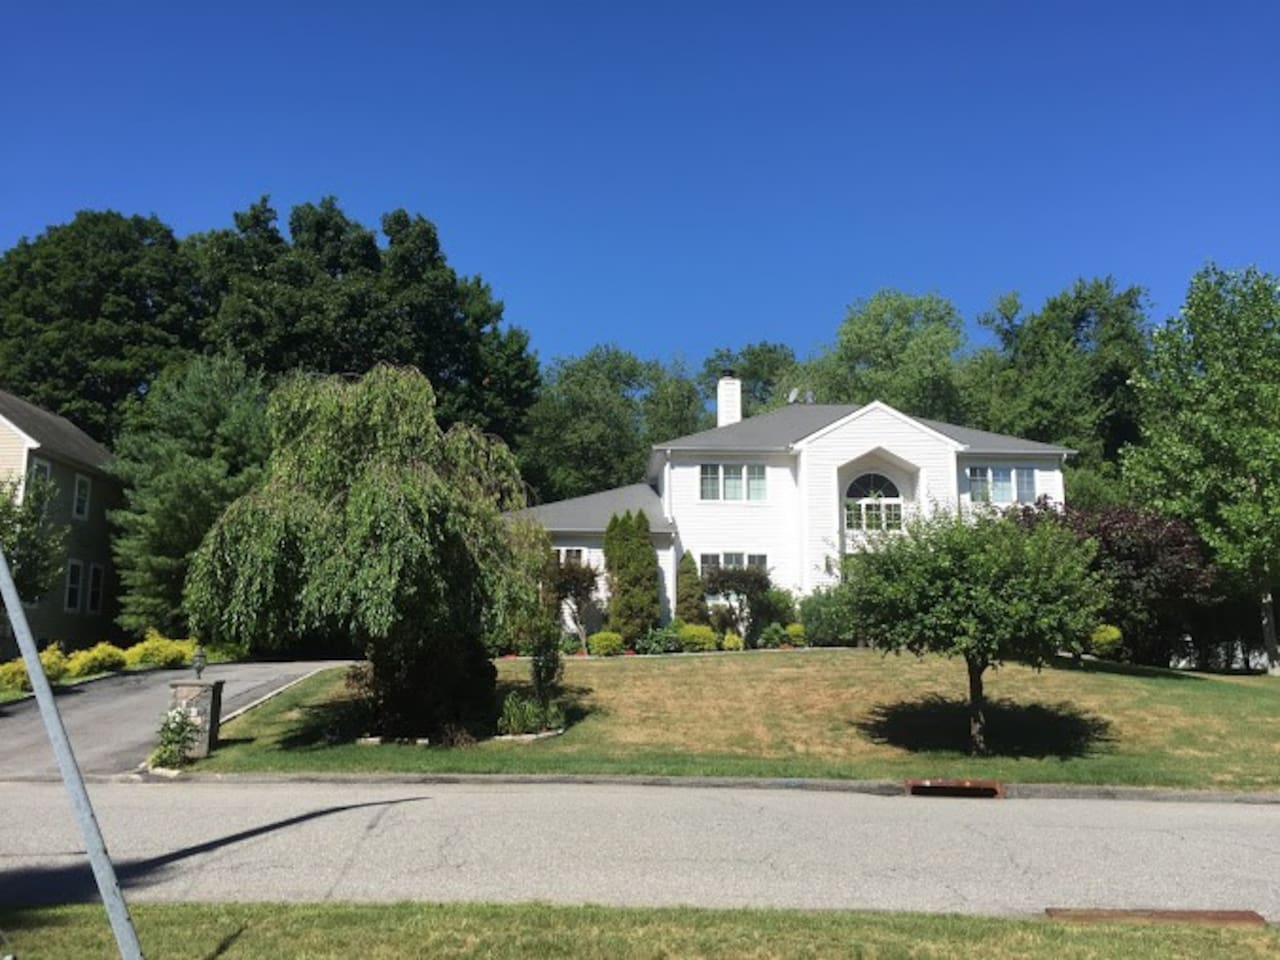 Bright, Clean and Spacious Modern Colonial on private Culder Sac has three separate private bedrooms with bathroom to offer.